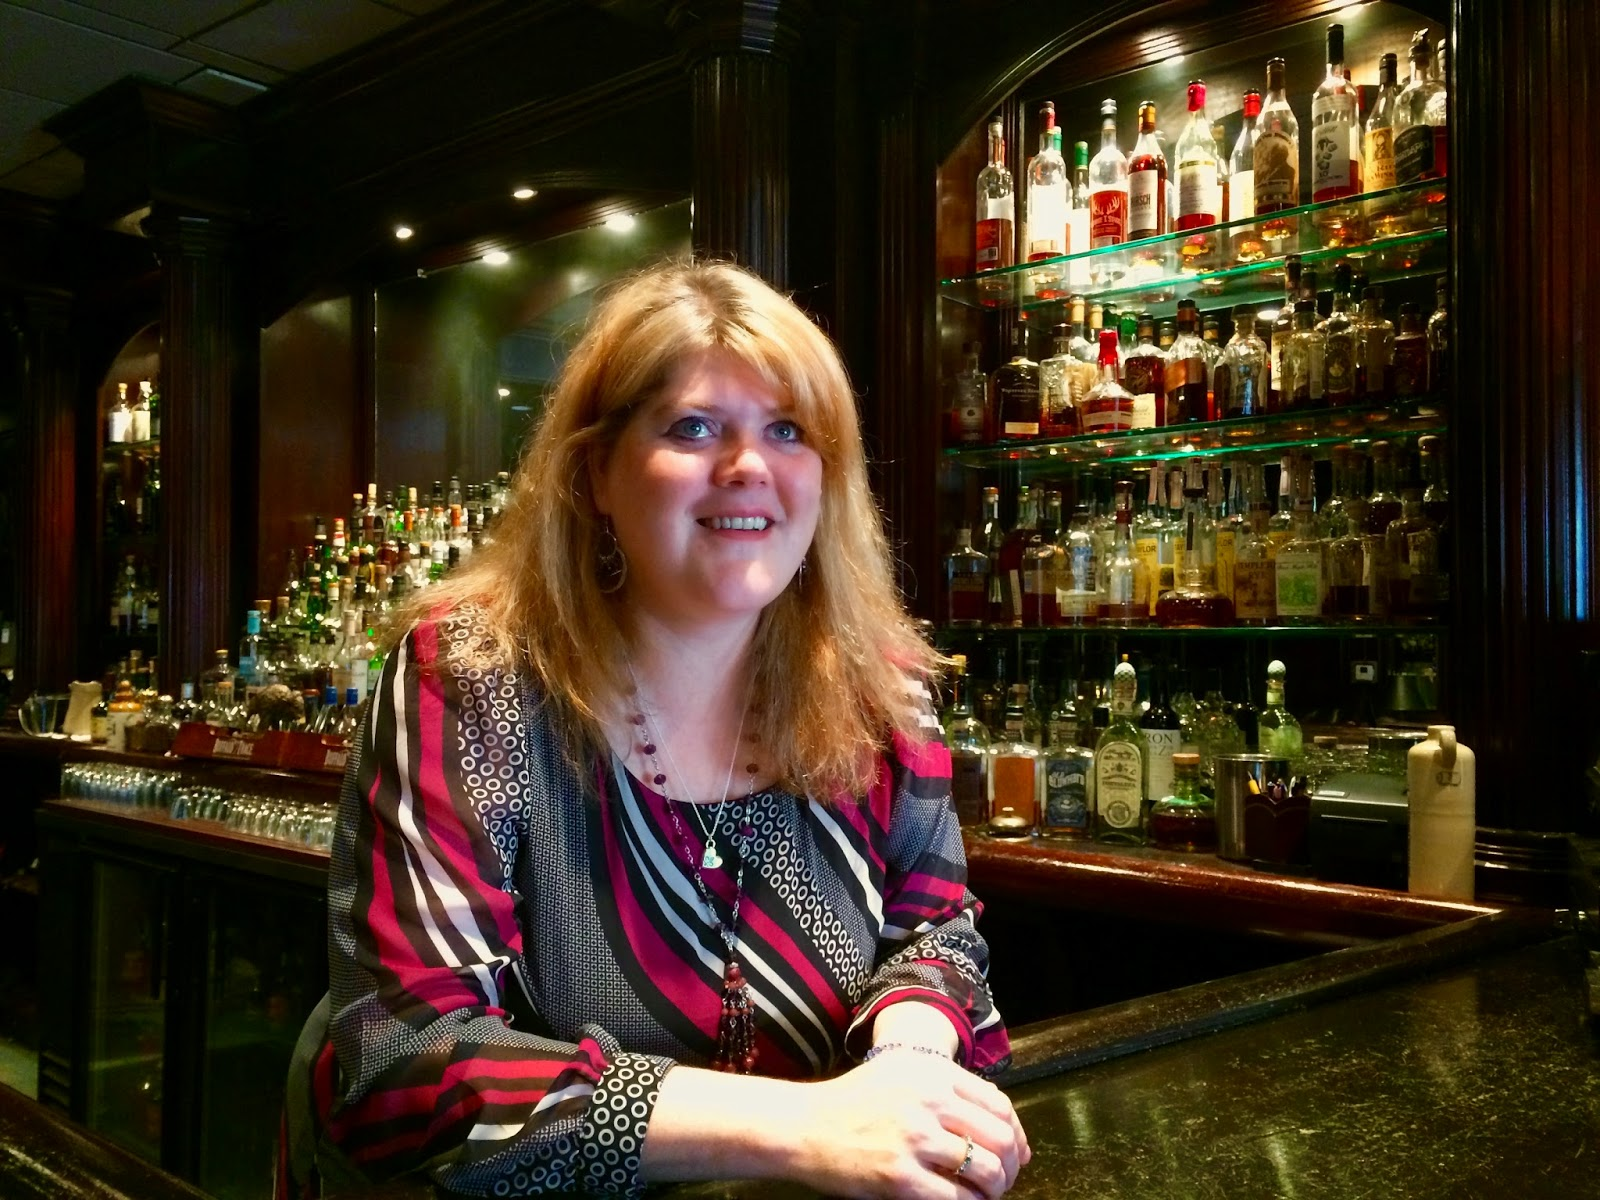 Brandi Lauck hanging out behind the bar while Arthur rambles on about whiskey